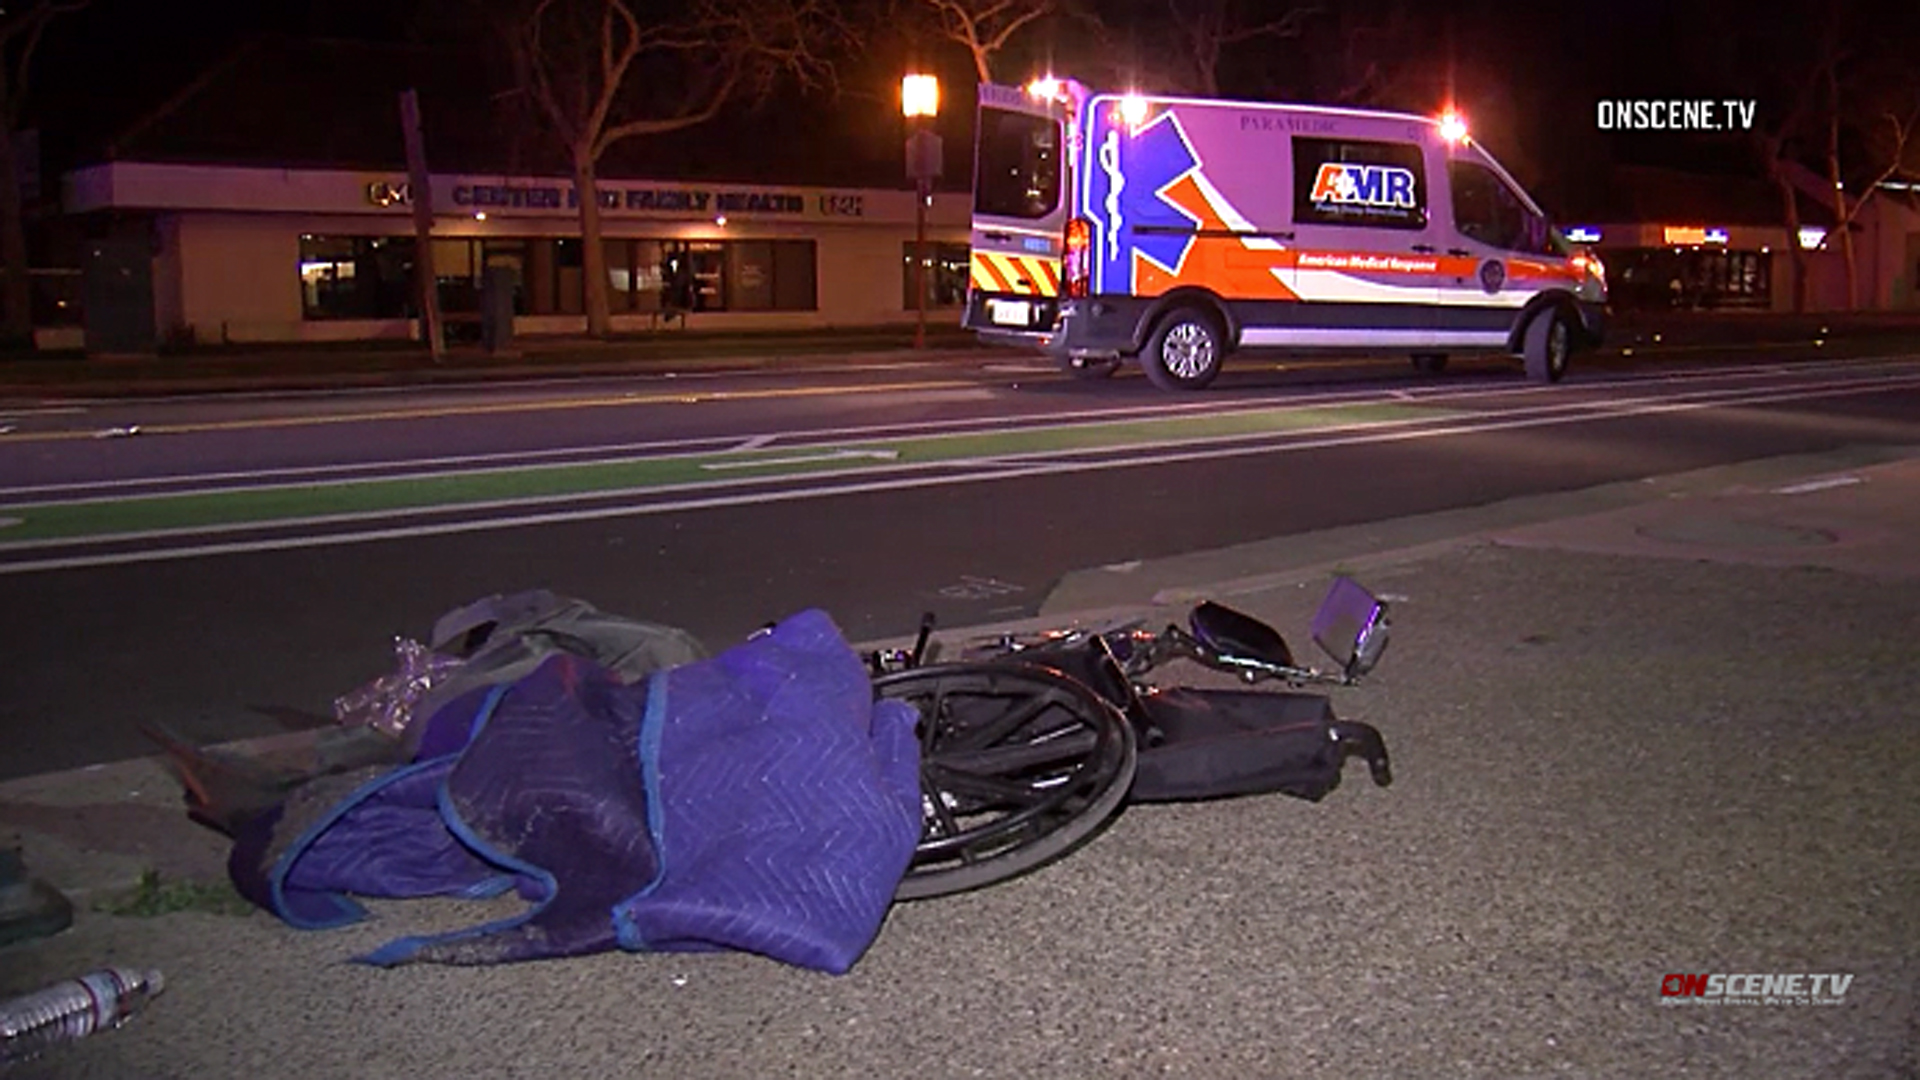 A hit-and-run victim's wheelchair is seen after it was struck by a car in Ventura on March 14, 2019. (Credit: OnScene.TV)